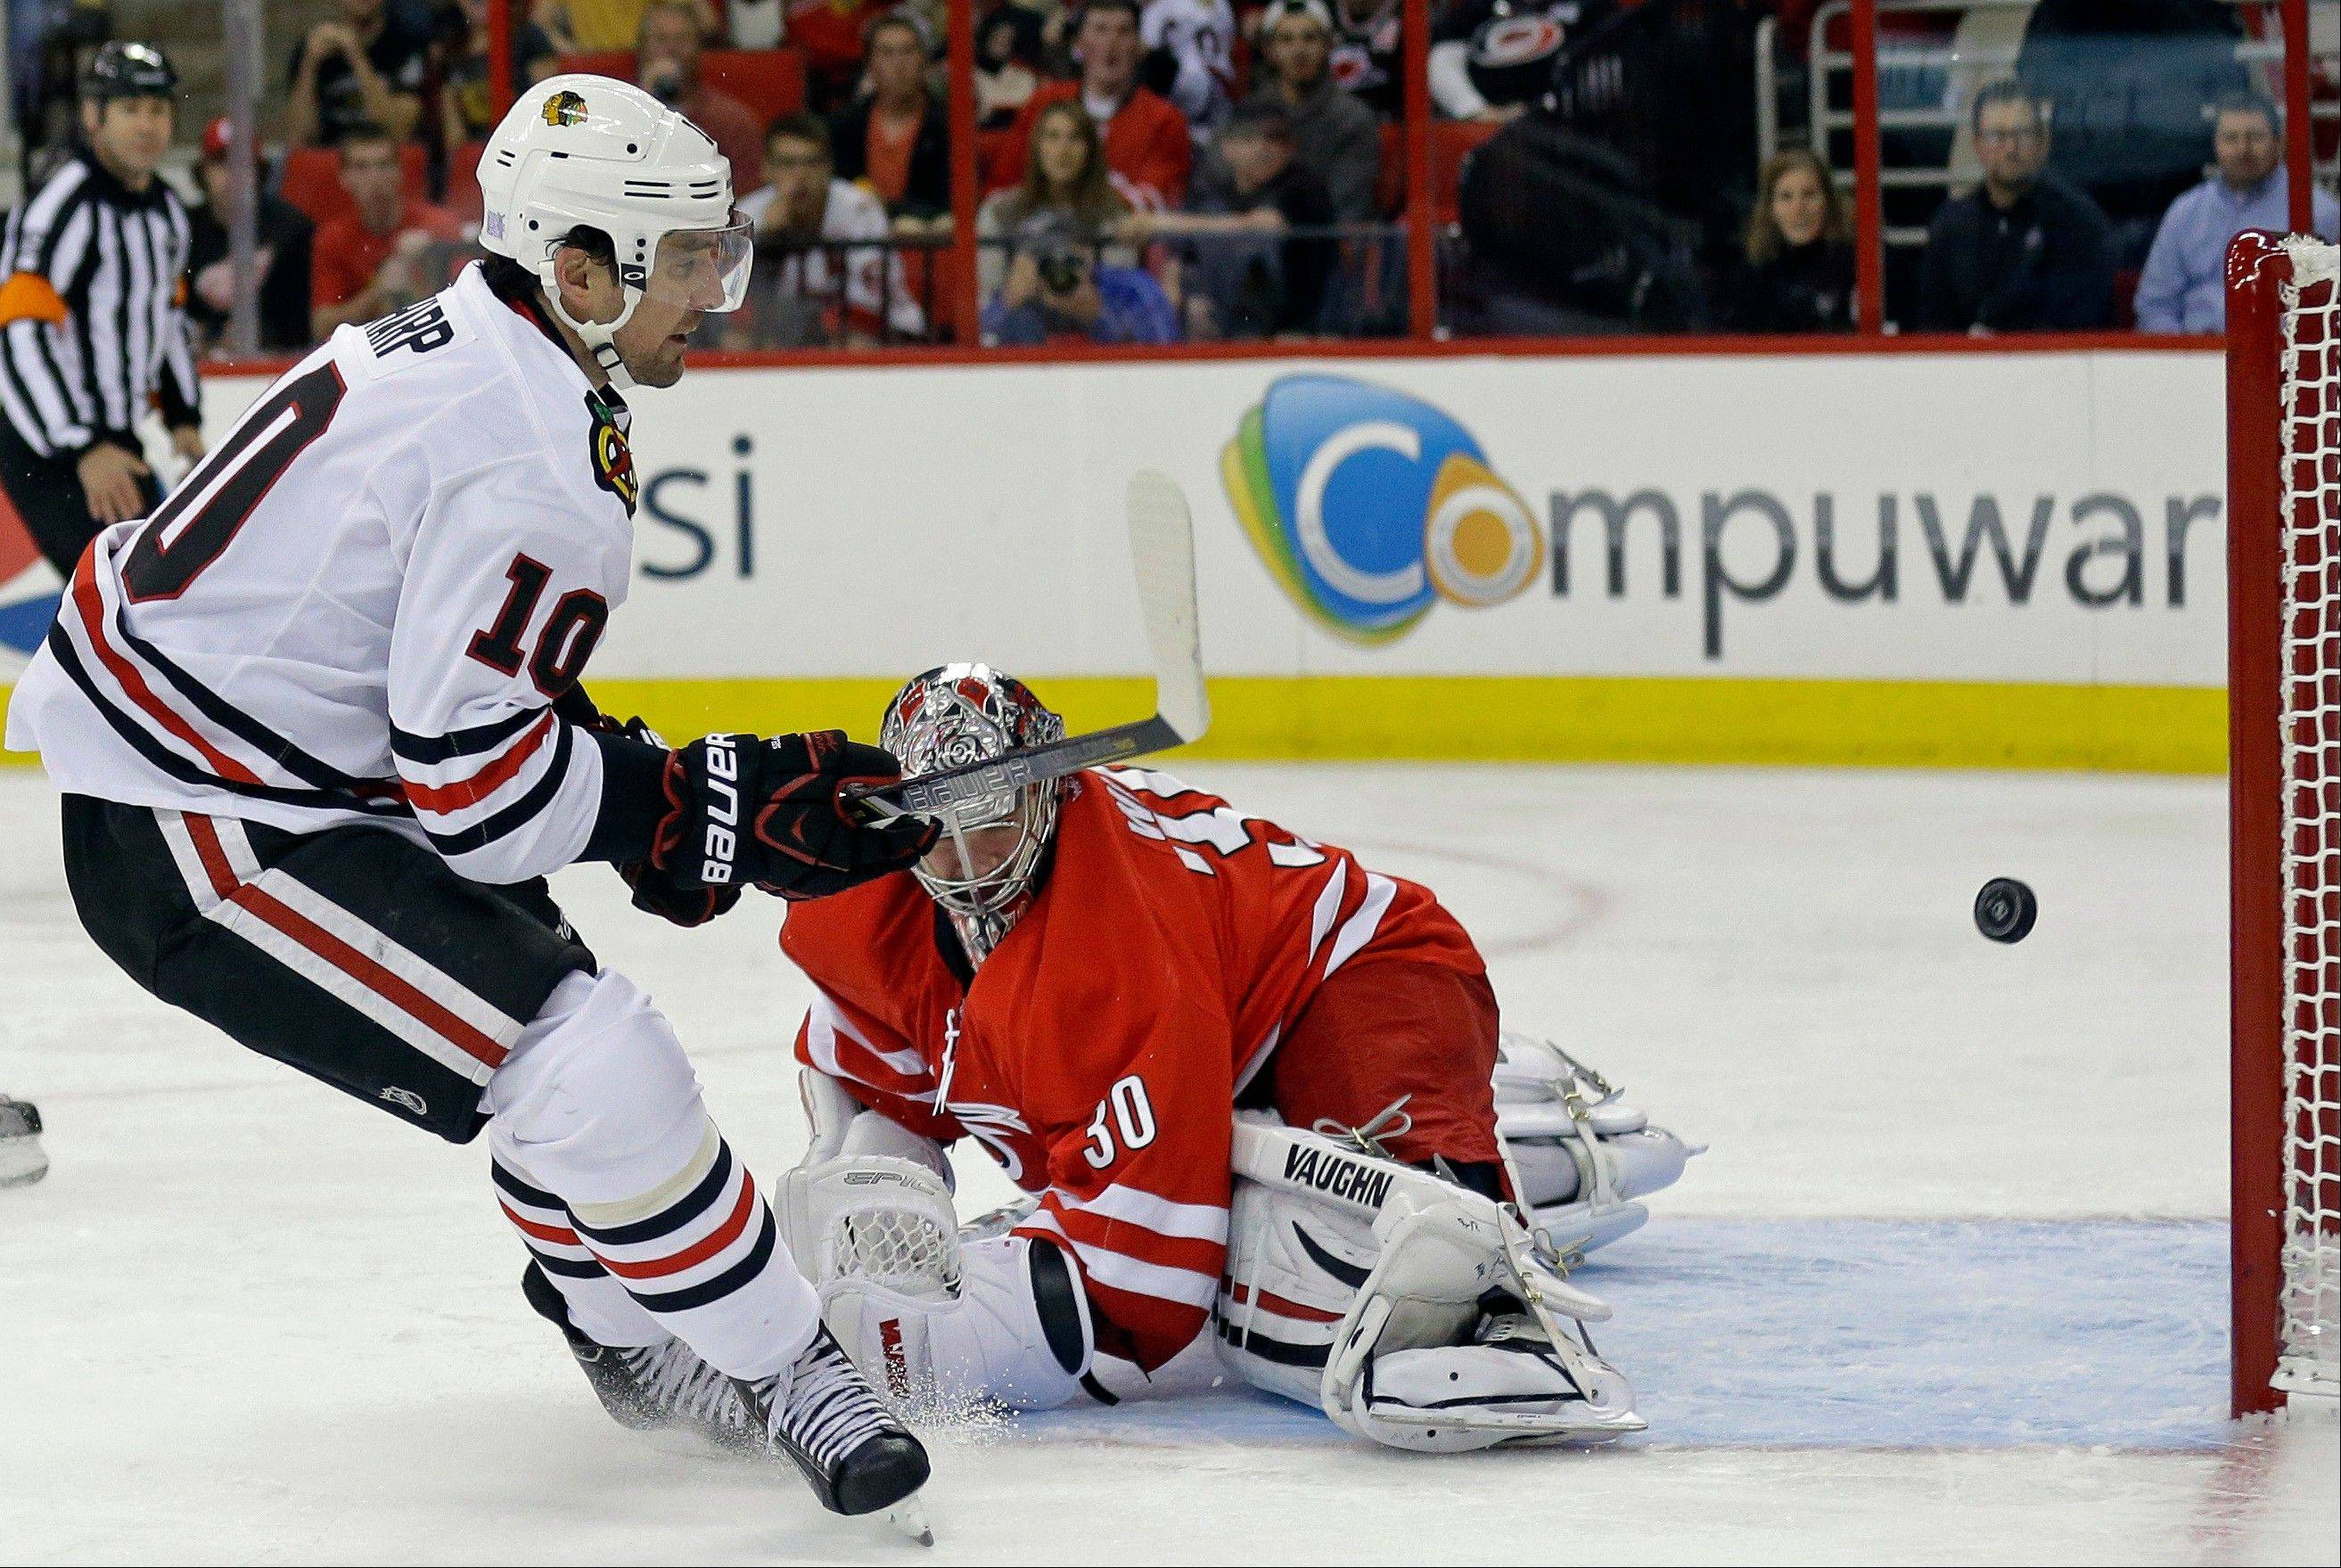 Patrick Sharp scores on Hurricanes goalie Cam Ward during the first period Tuesday night for his first goal of the season. Sharp also scored the only goal in the shootout.